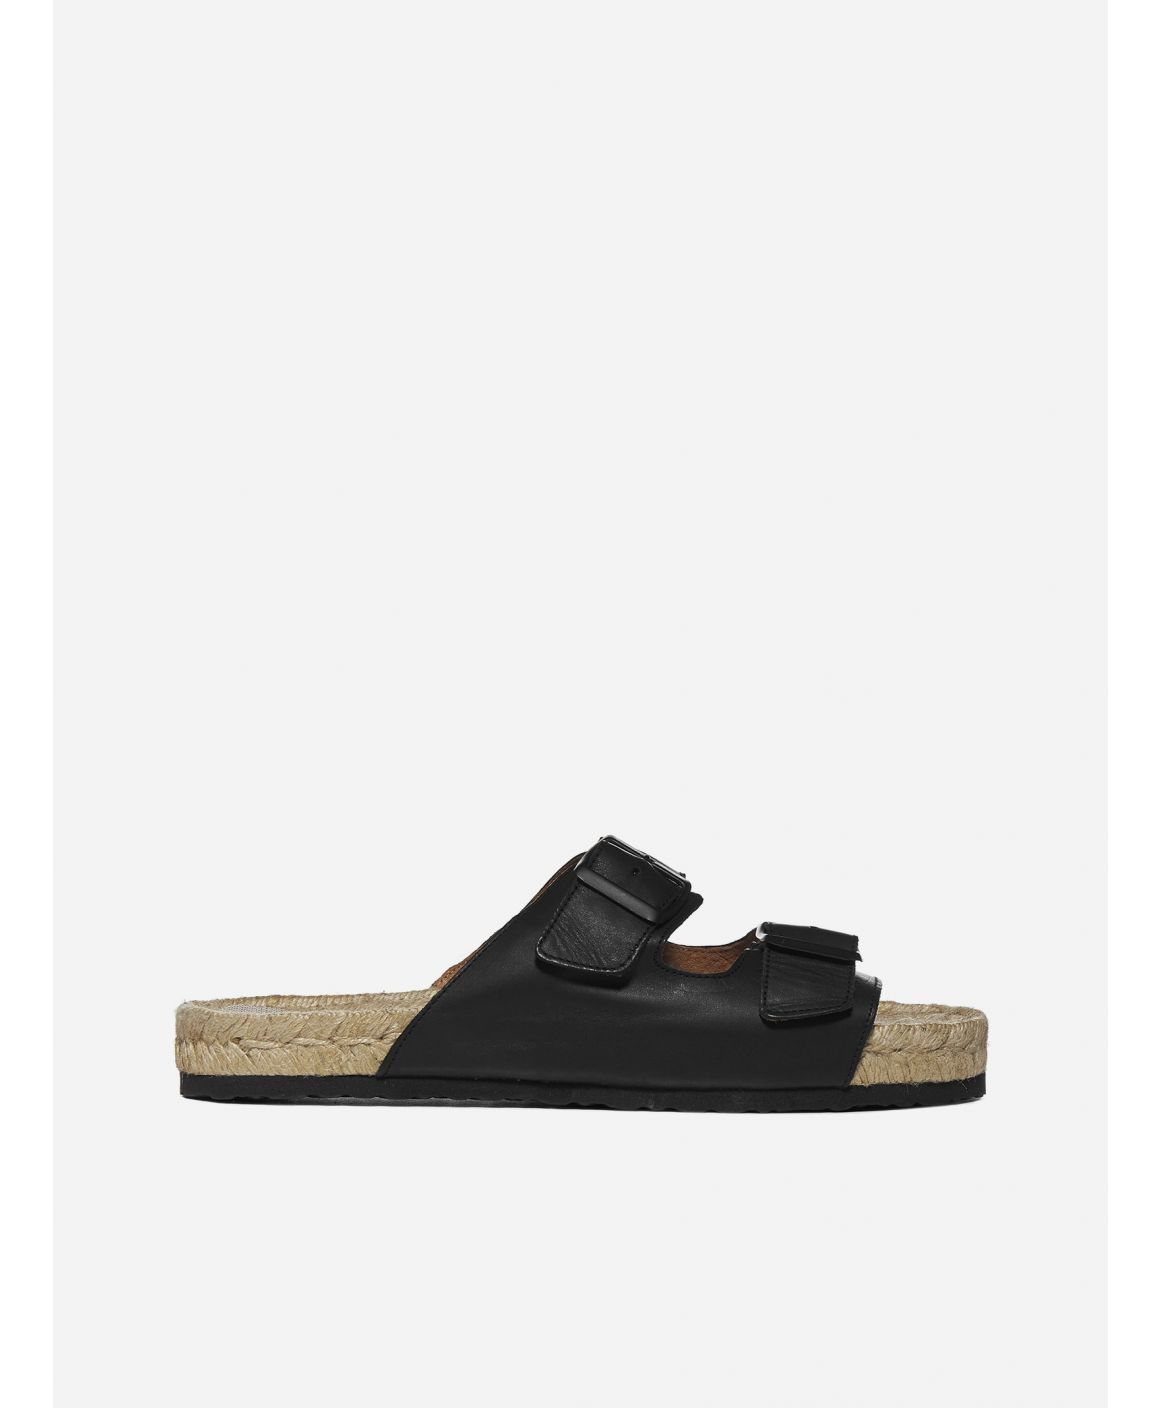 Hamptons Nordic leather sandals